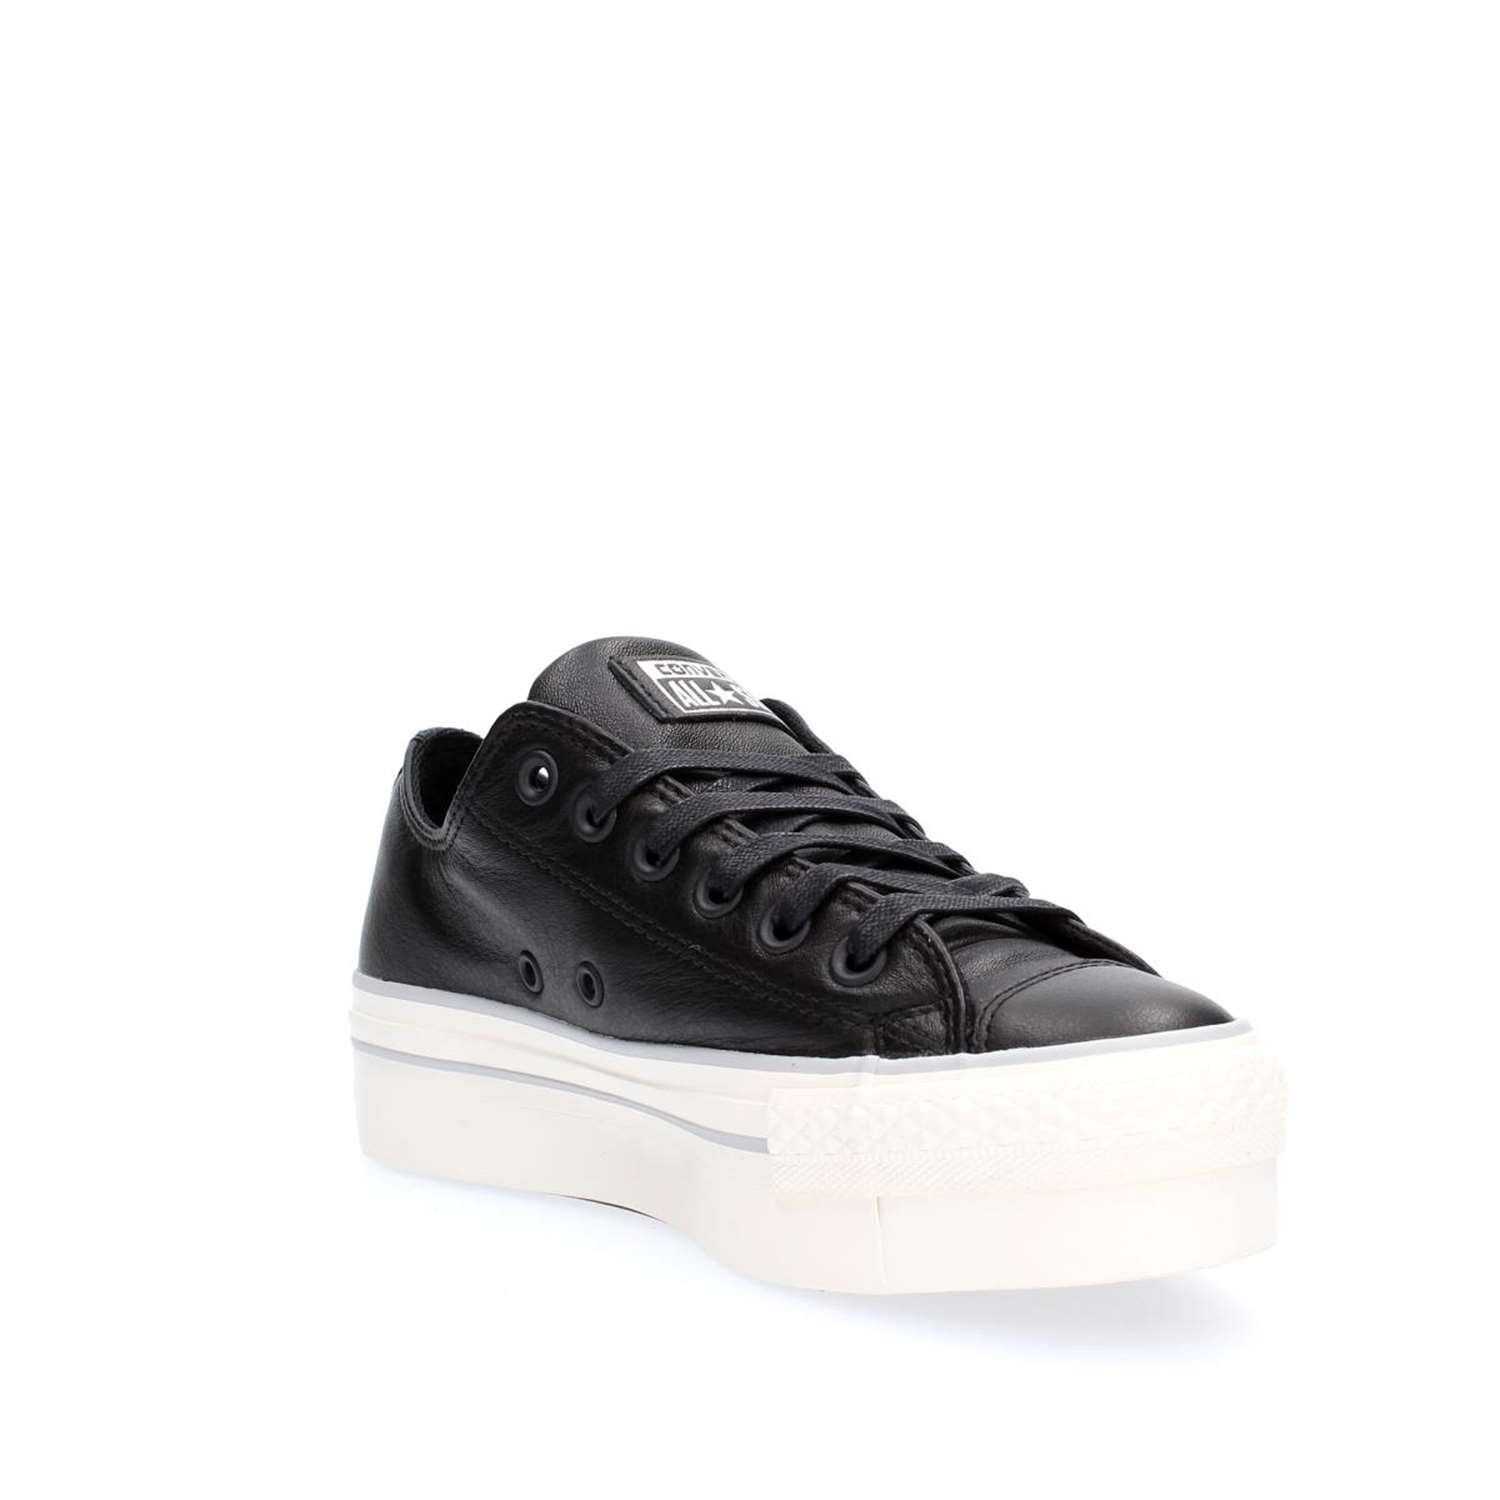 Converse 559016c Sneakers Mujer Black/mouse/white 35 cb9mx